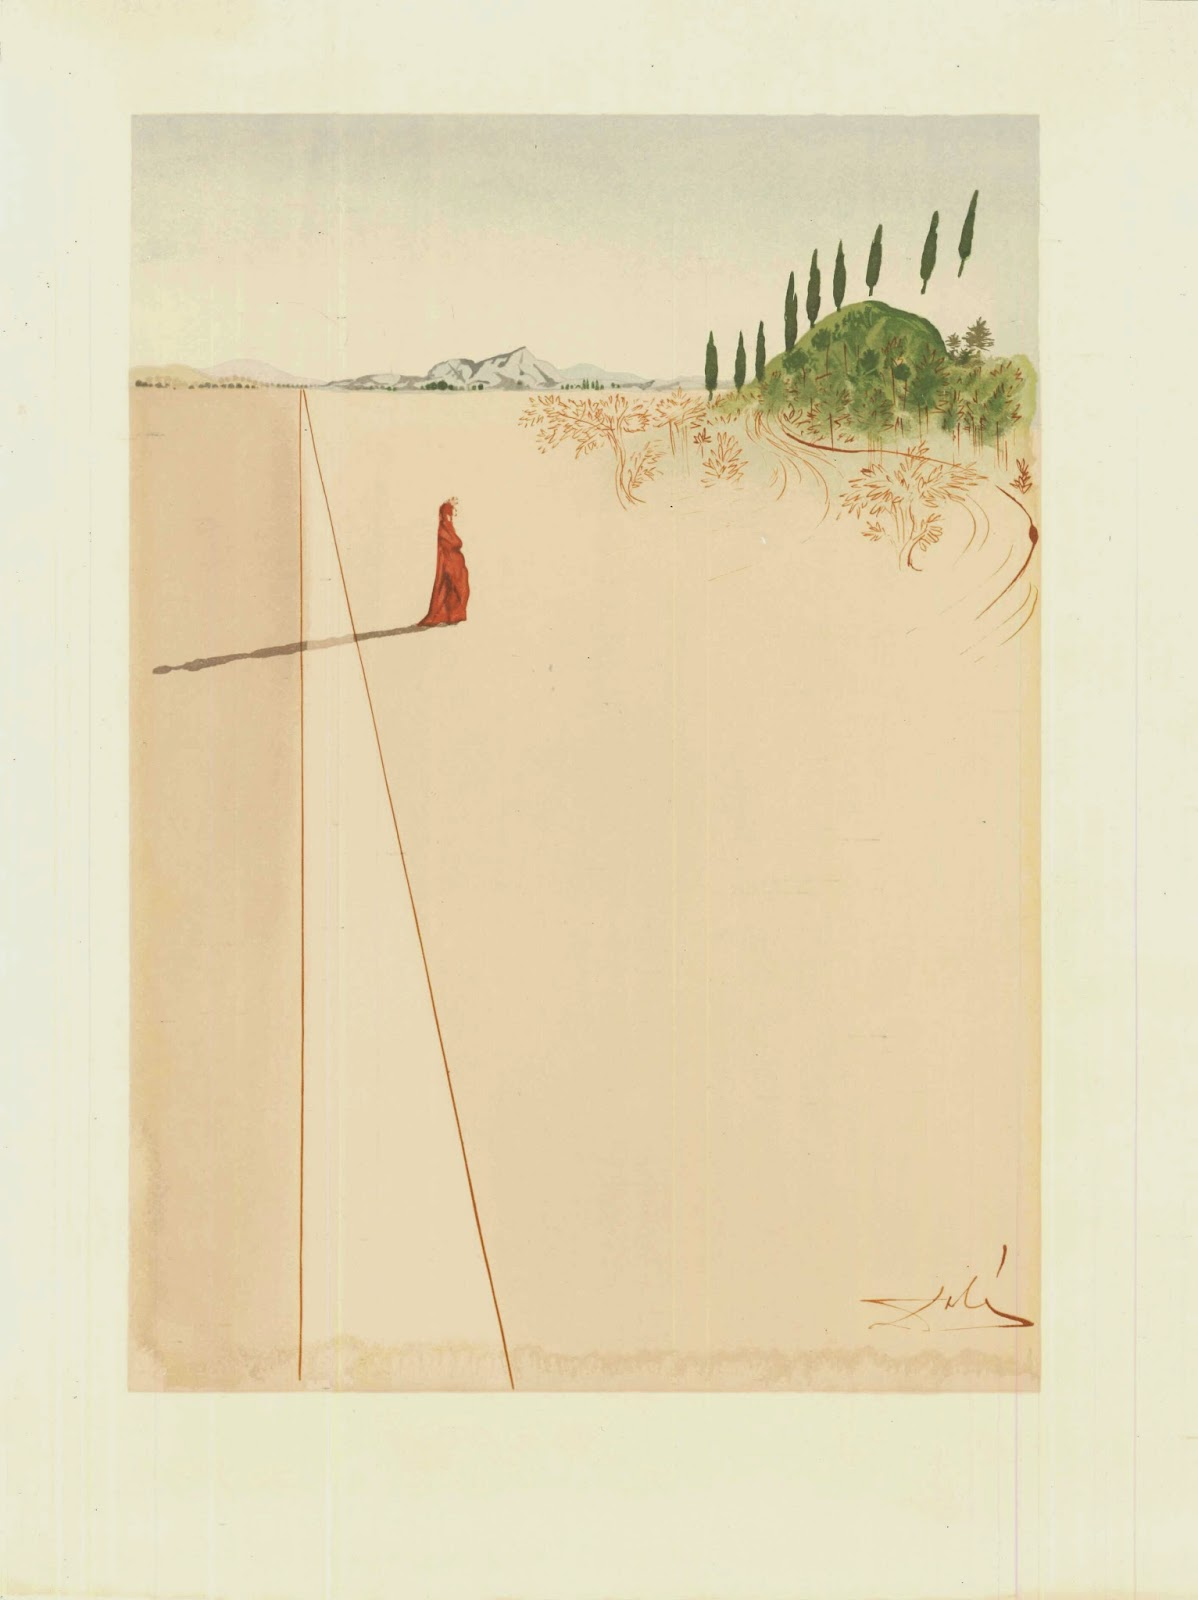 A watercolor illustration of a small figure in red standing in a vast, barren landscape.